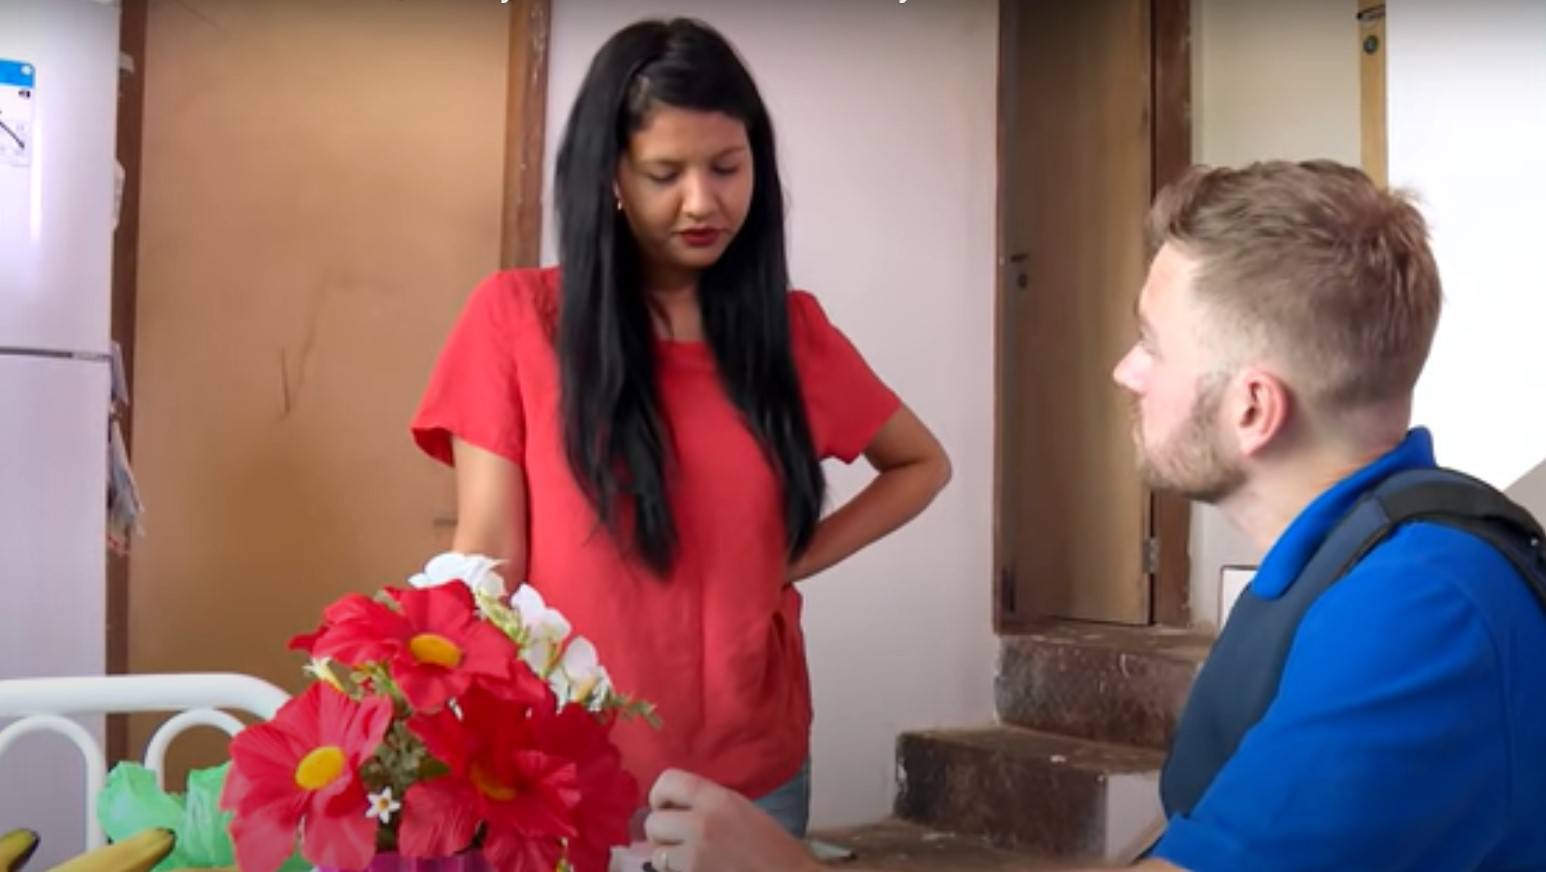 Paul Stehle and Karine Martins on '90 Day Fiancé'